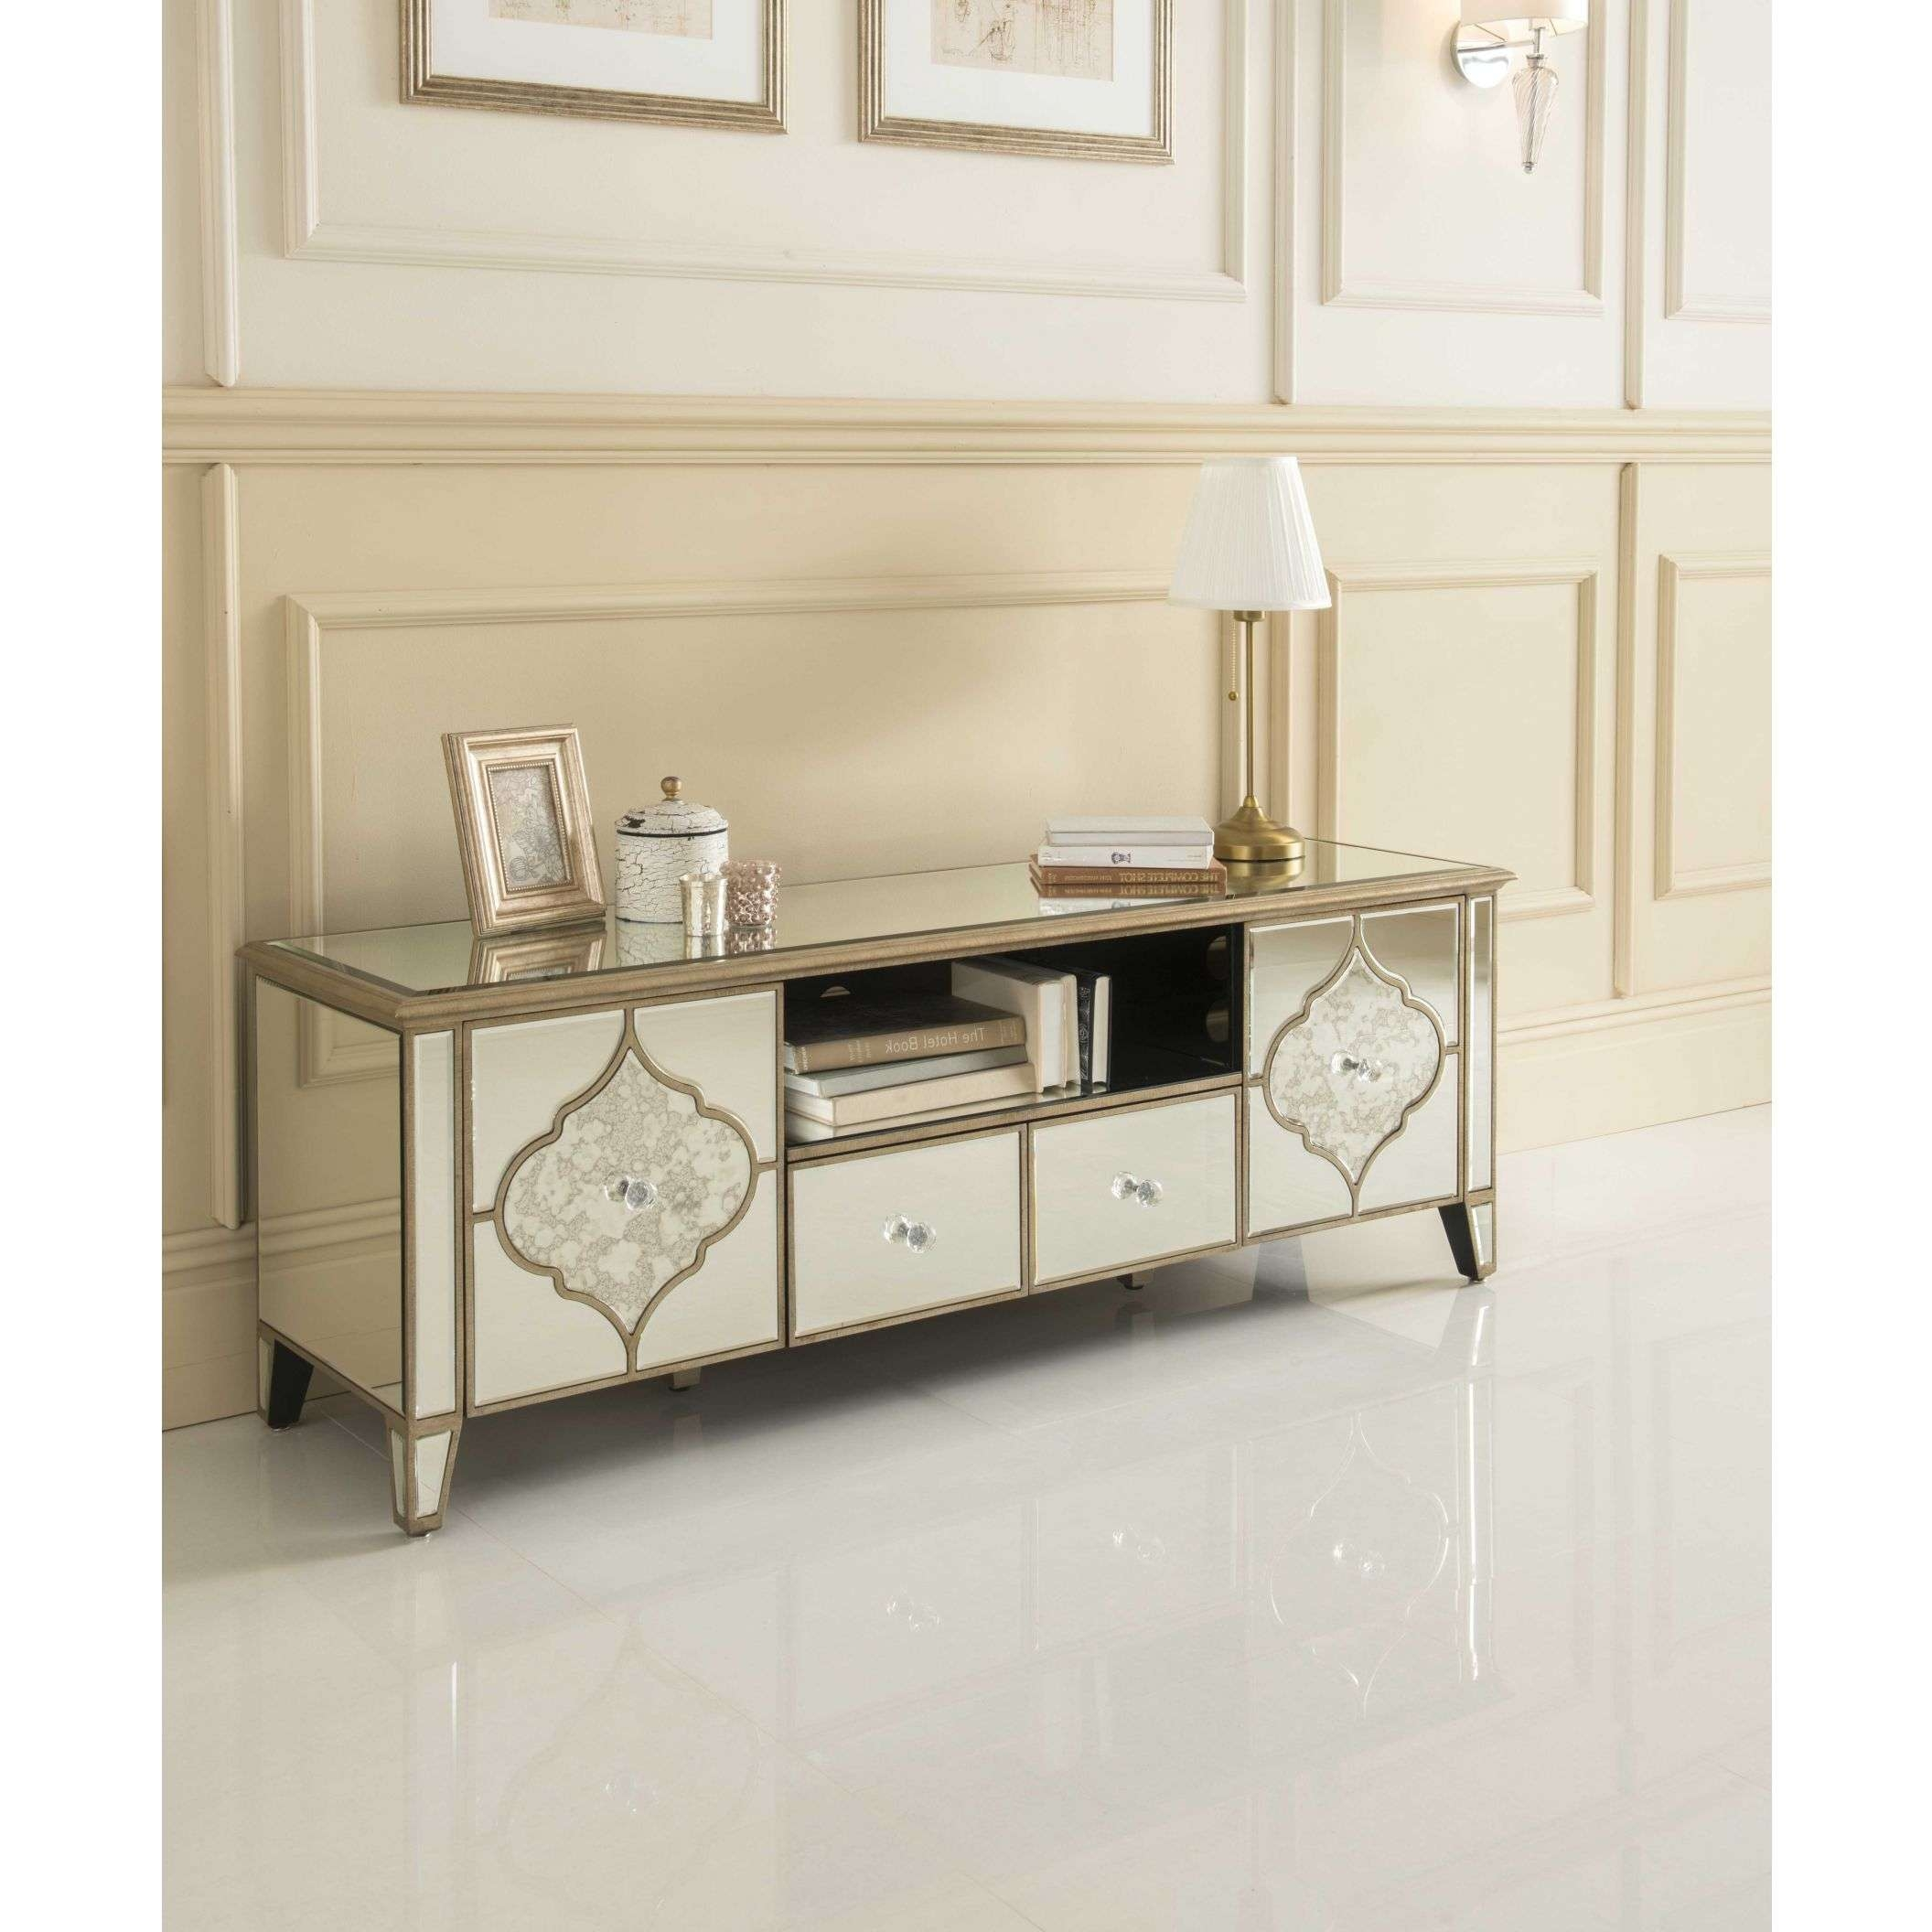 Sassari Mirrored Tv Cabinet | Glass Furniture Intended For Mirror Tv Cabinets (View 2 of 20)